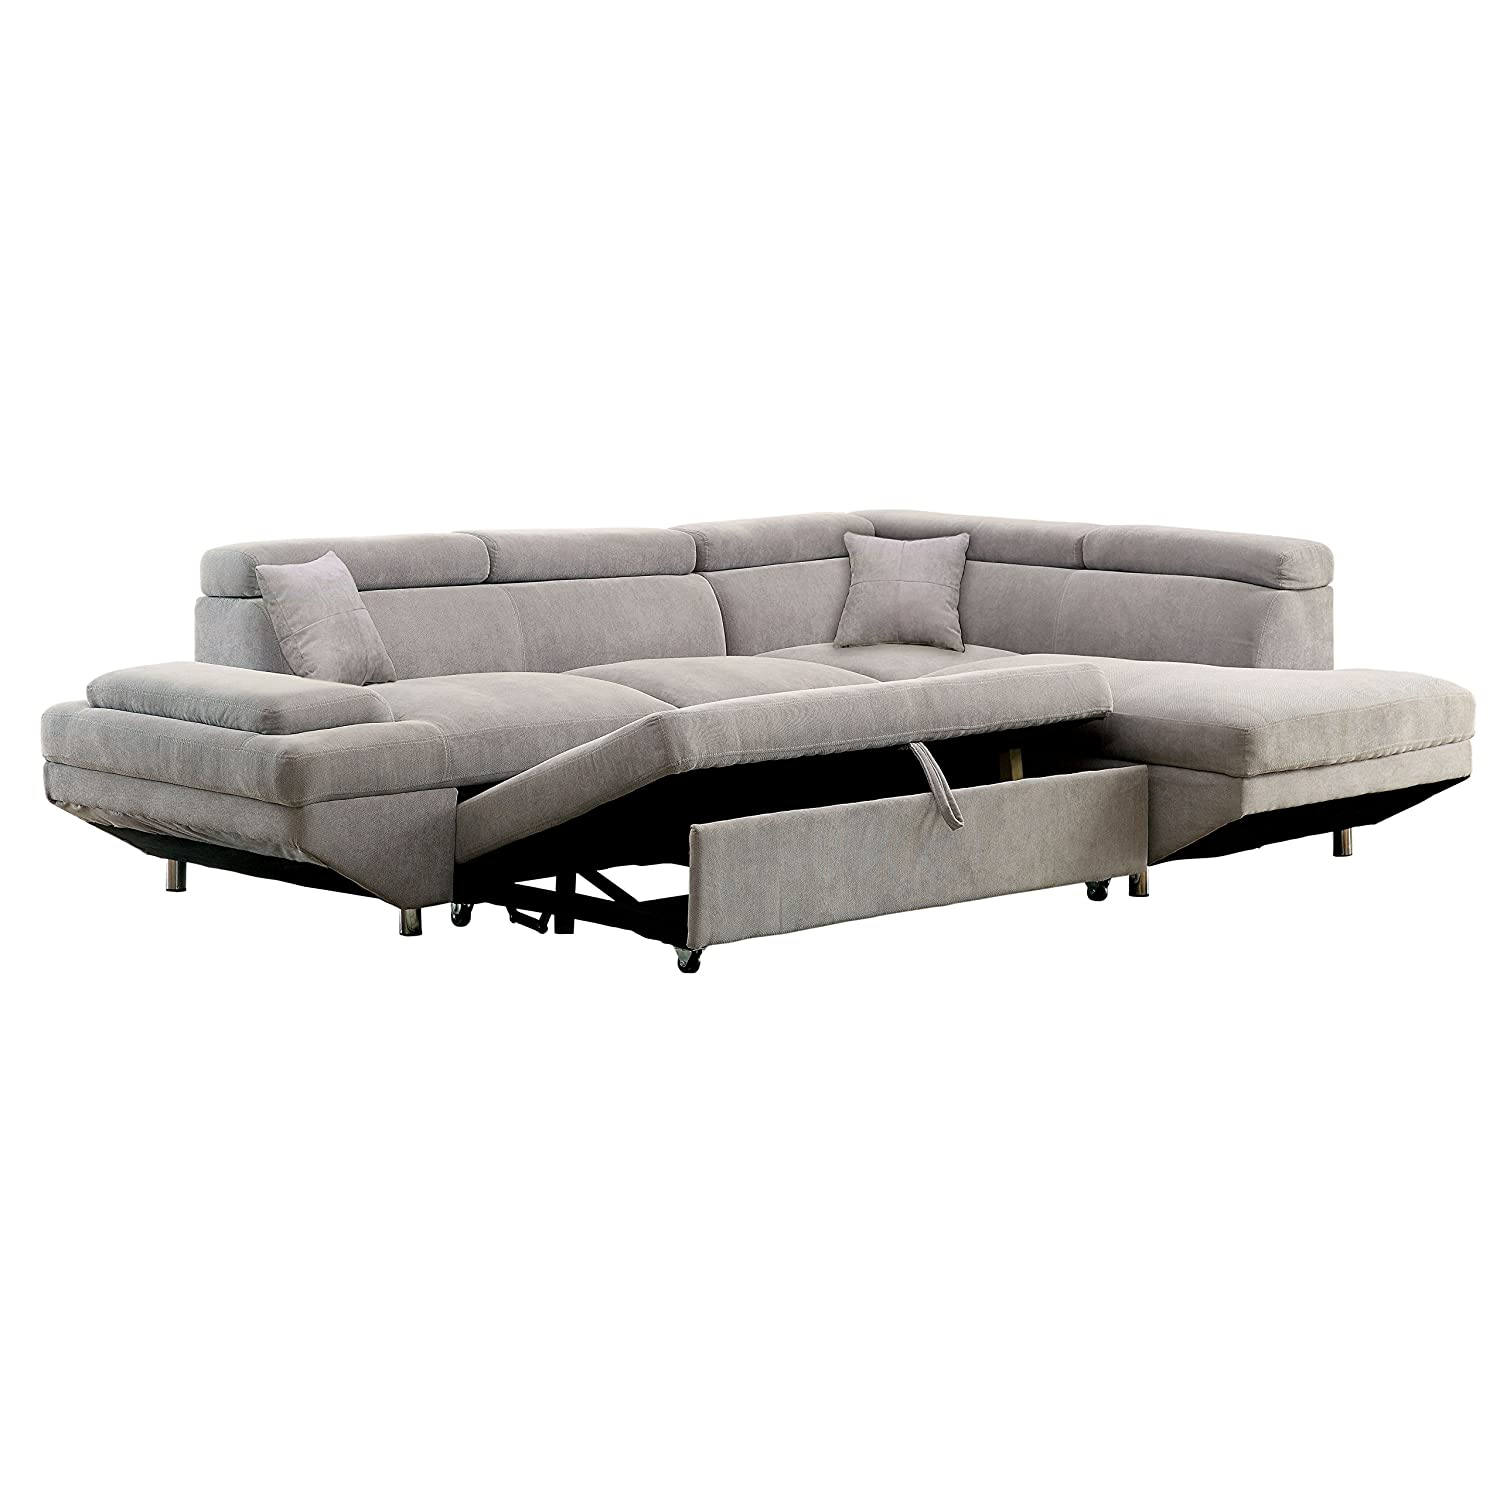 Amazon HOMES Inside Out IDF 6124GY SEC Walter s Sectional